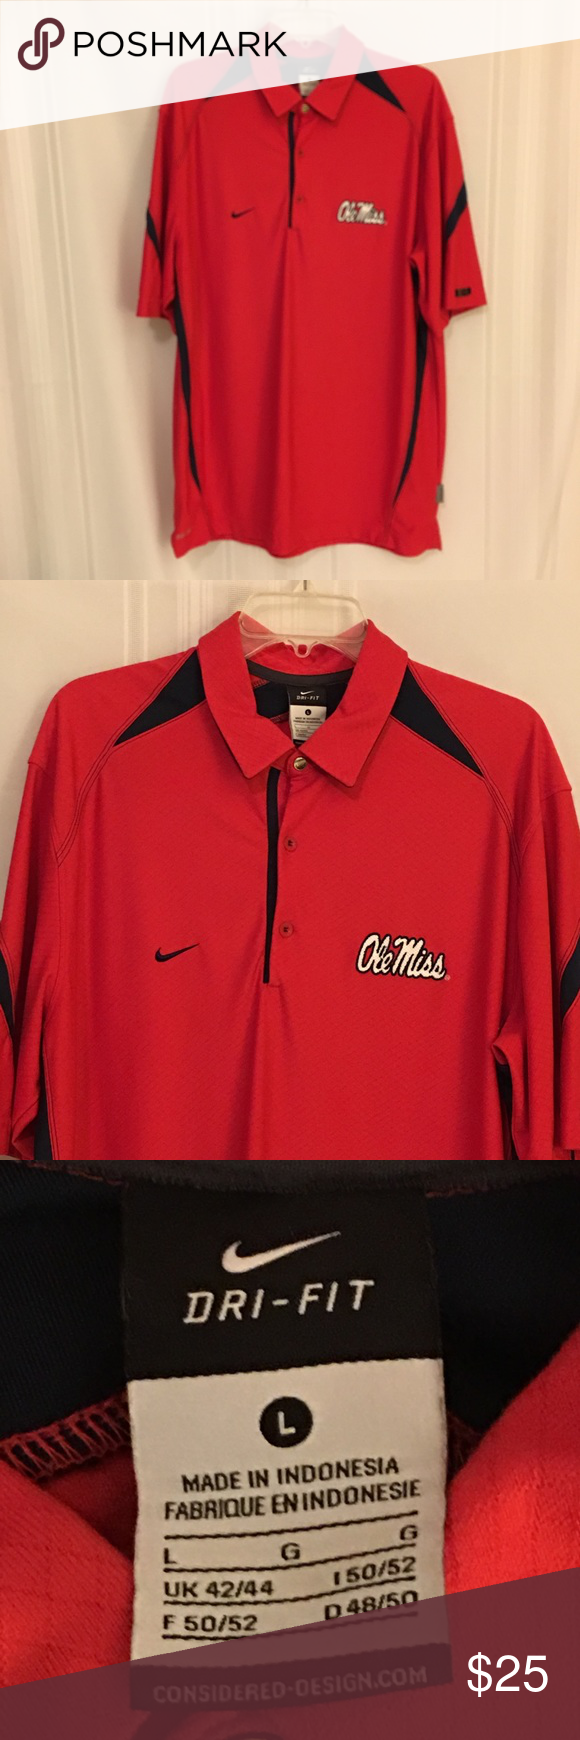 d3809d81 Nike Dr Fit Ole Miss Rebels Polo Golf Shirt EUC! Size Large Nike Dri Fit  100% Polyester Knit Short Sleeve Shirt. Red with Blue accents.